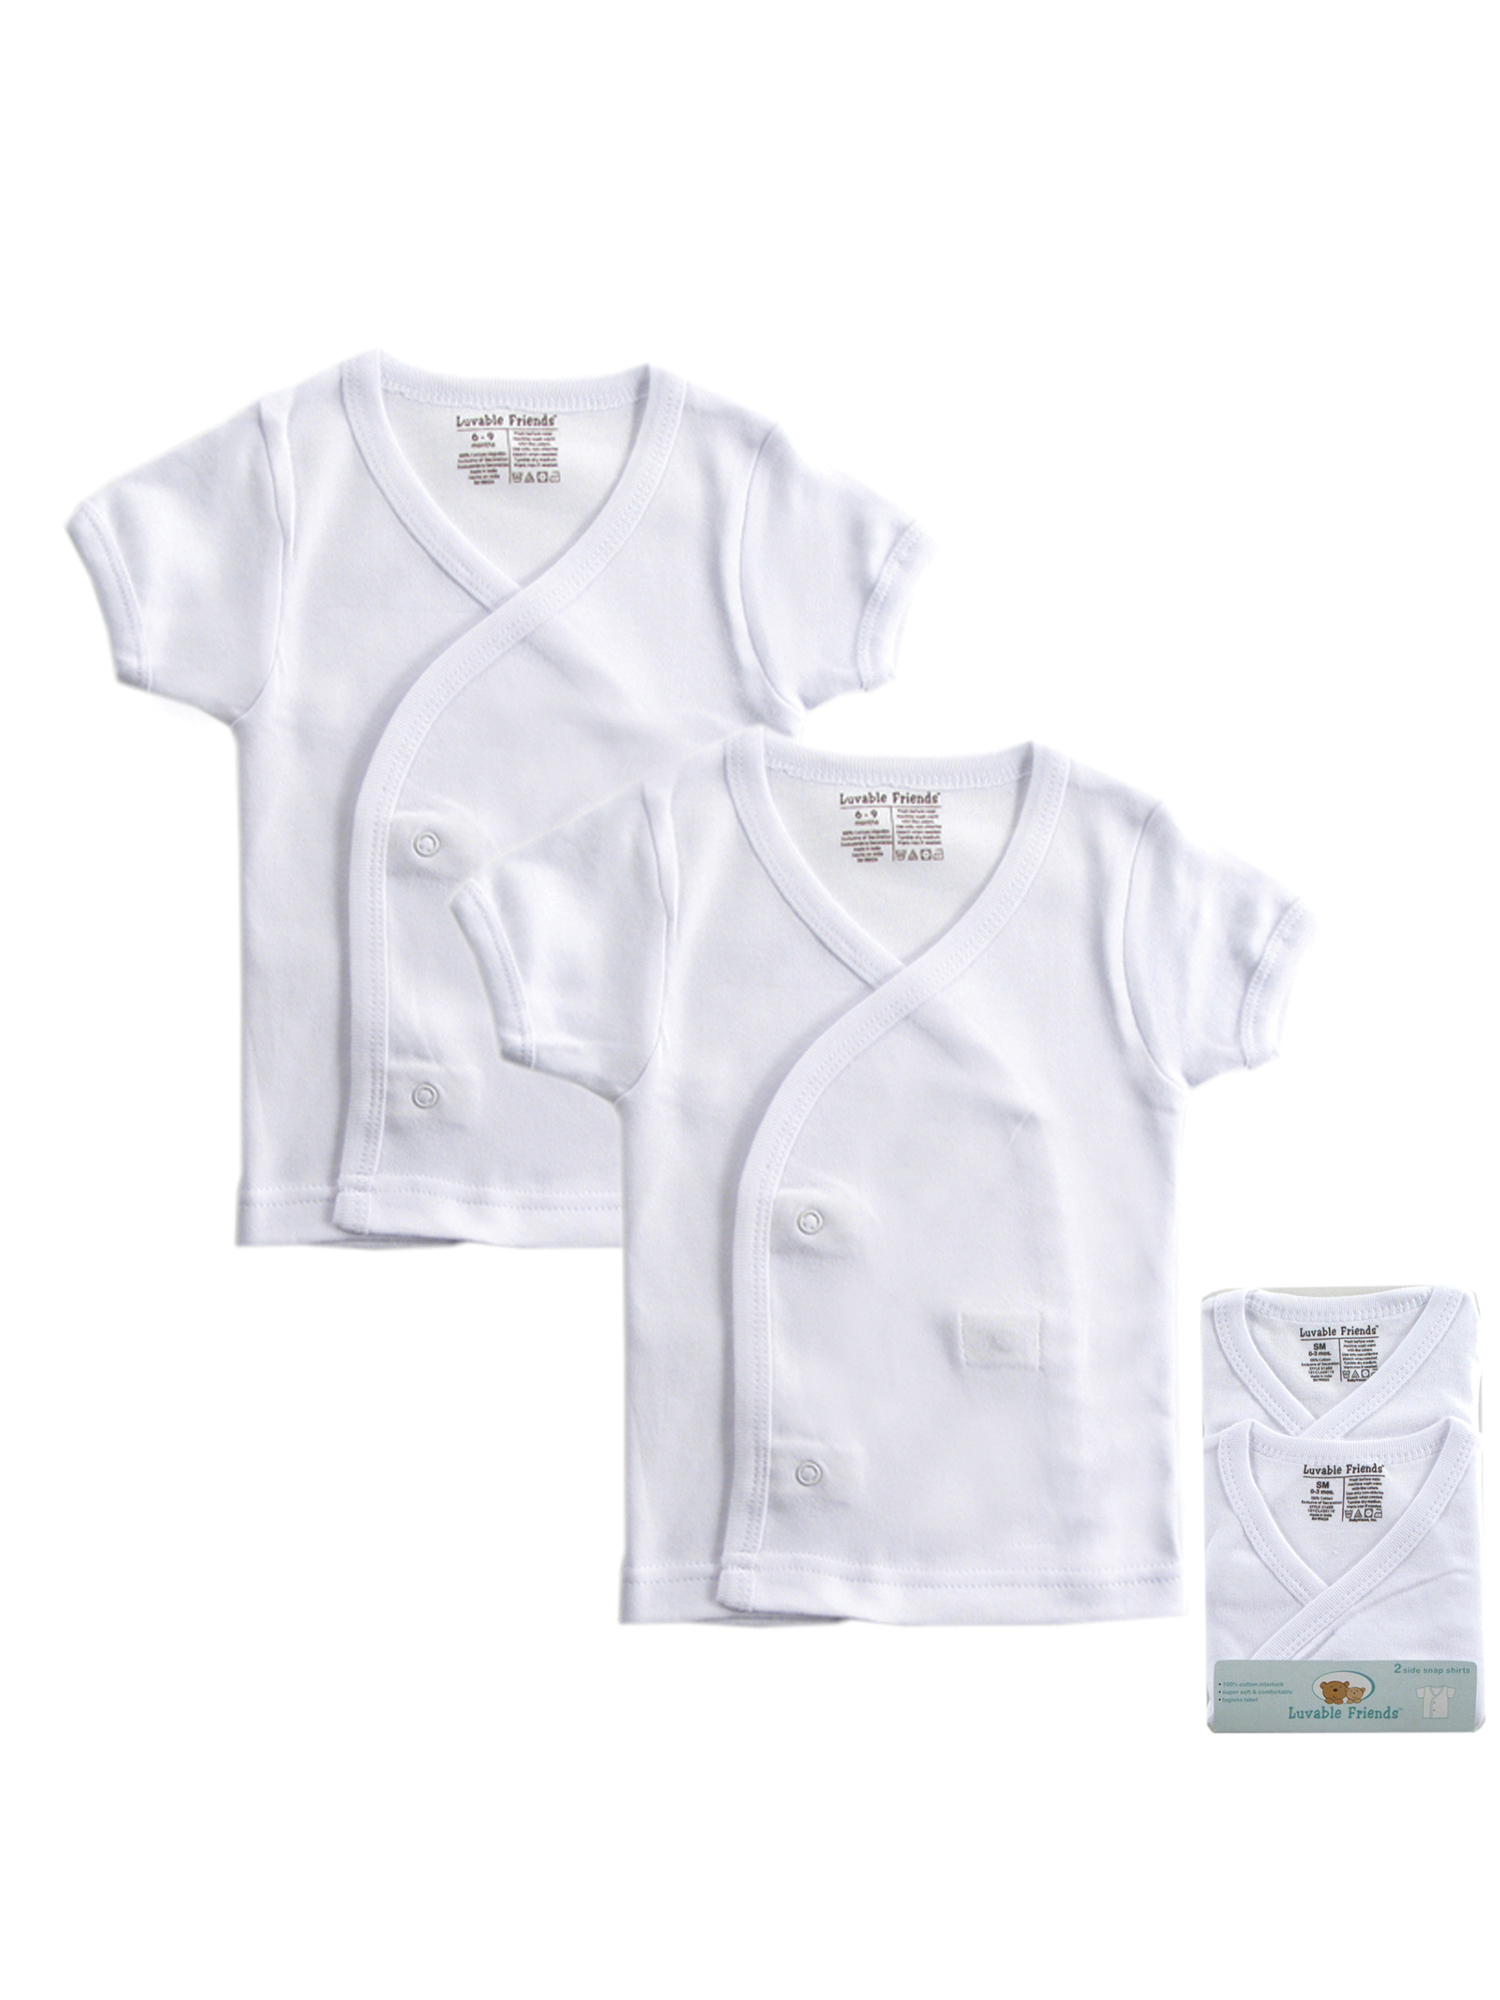 Unisex White Side Snap Shirts, 2-Pack